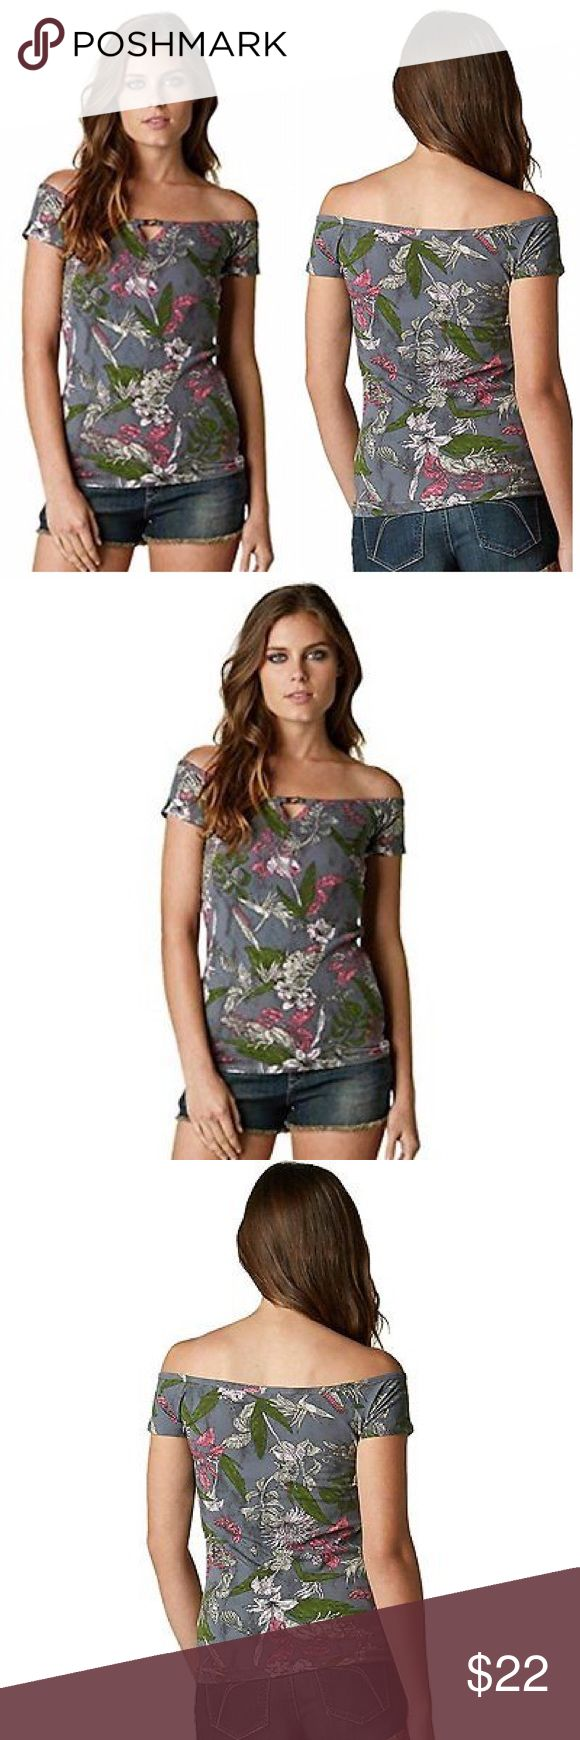 🆕Fox Racing Exotic Short Sleeve Top ·      100% Combed Cotton Jersey ·      Fox Racing Exotic Short-Sleeve Top Shirts for Girls ·      Body concious off shoulder, short sleeve short-sleeve-top with all over art print ·      Notch at center front with metal Fox link Fox Tops